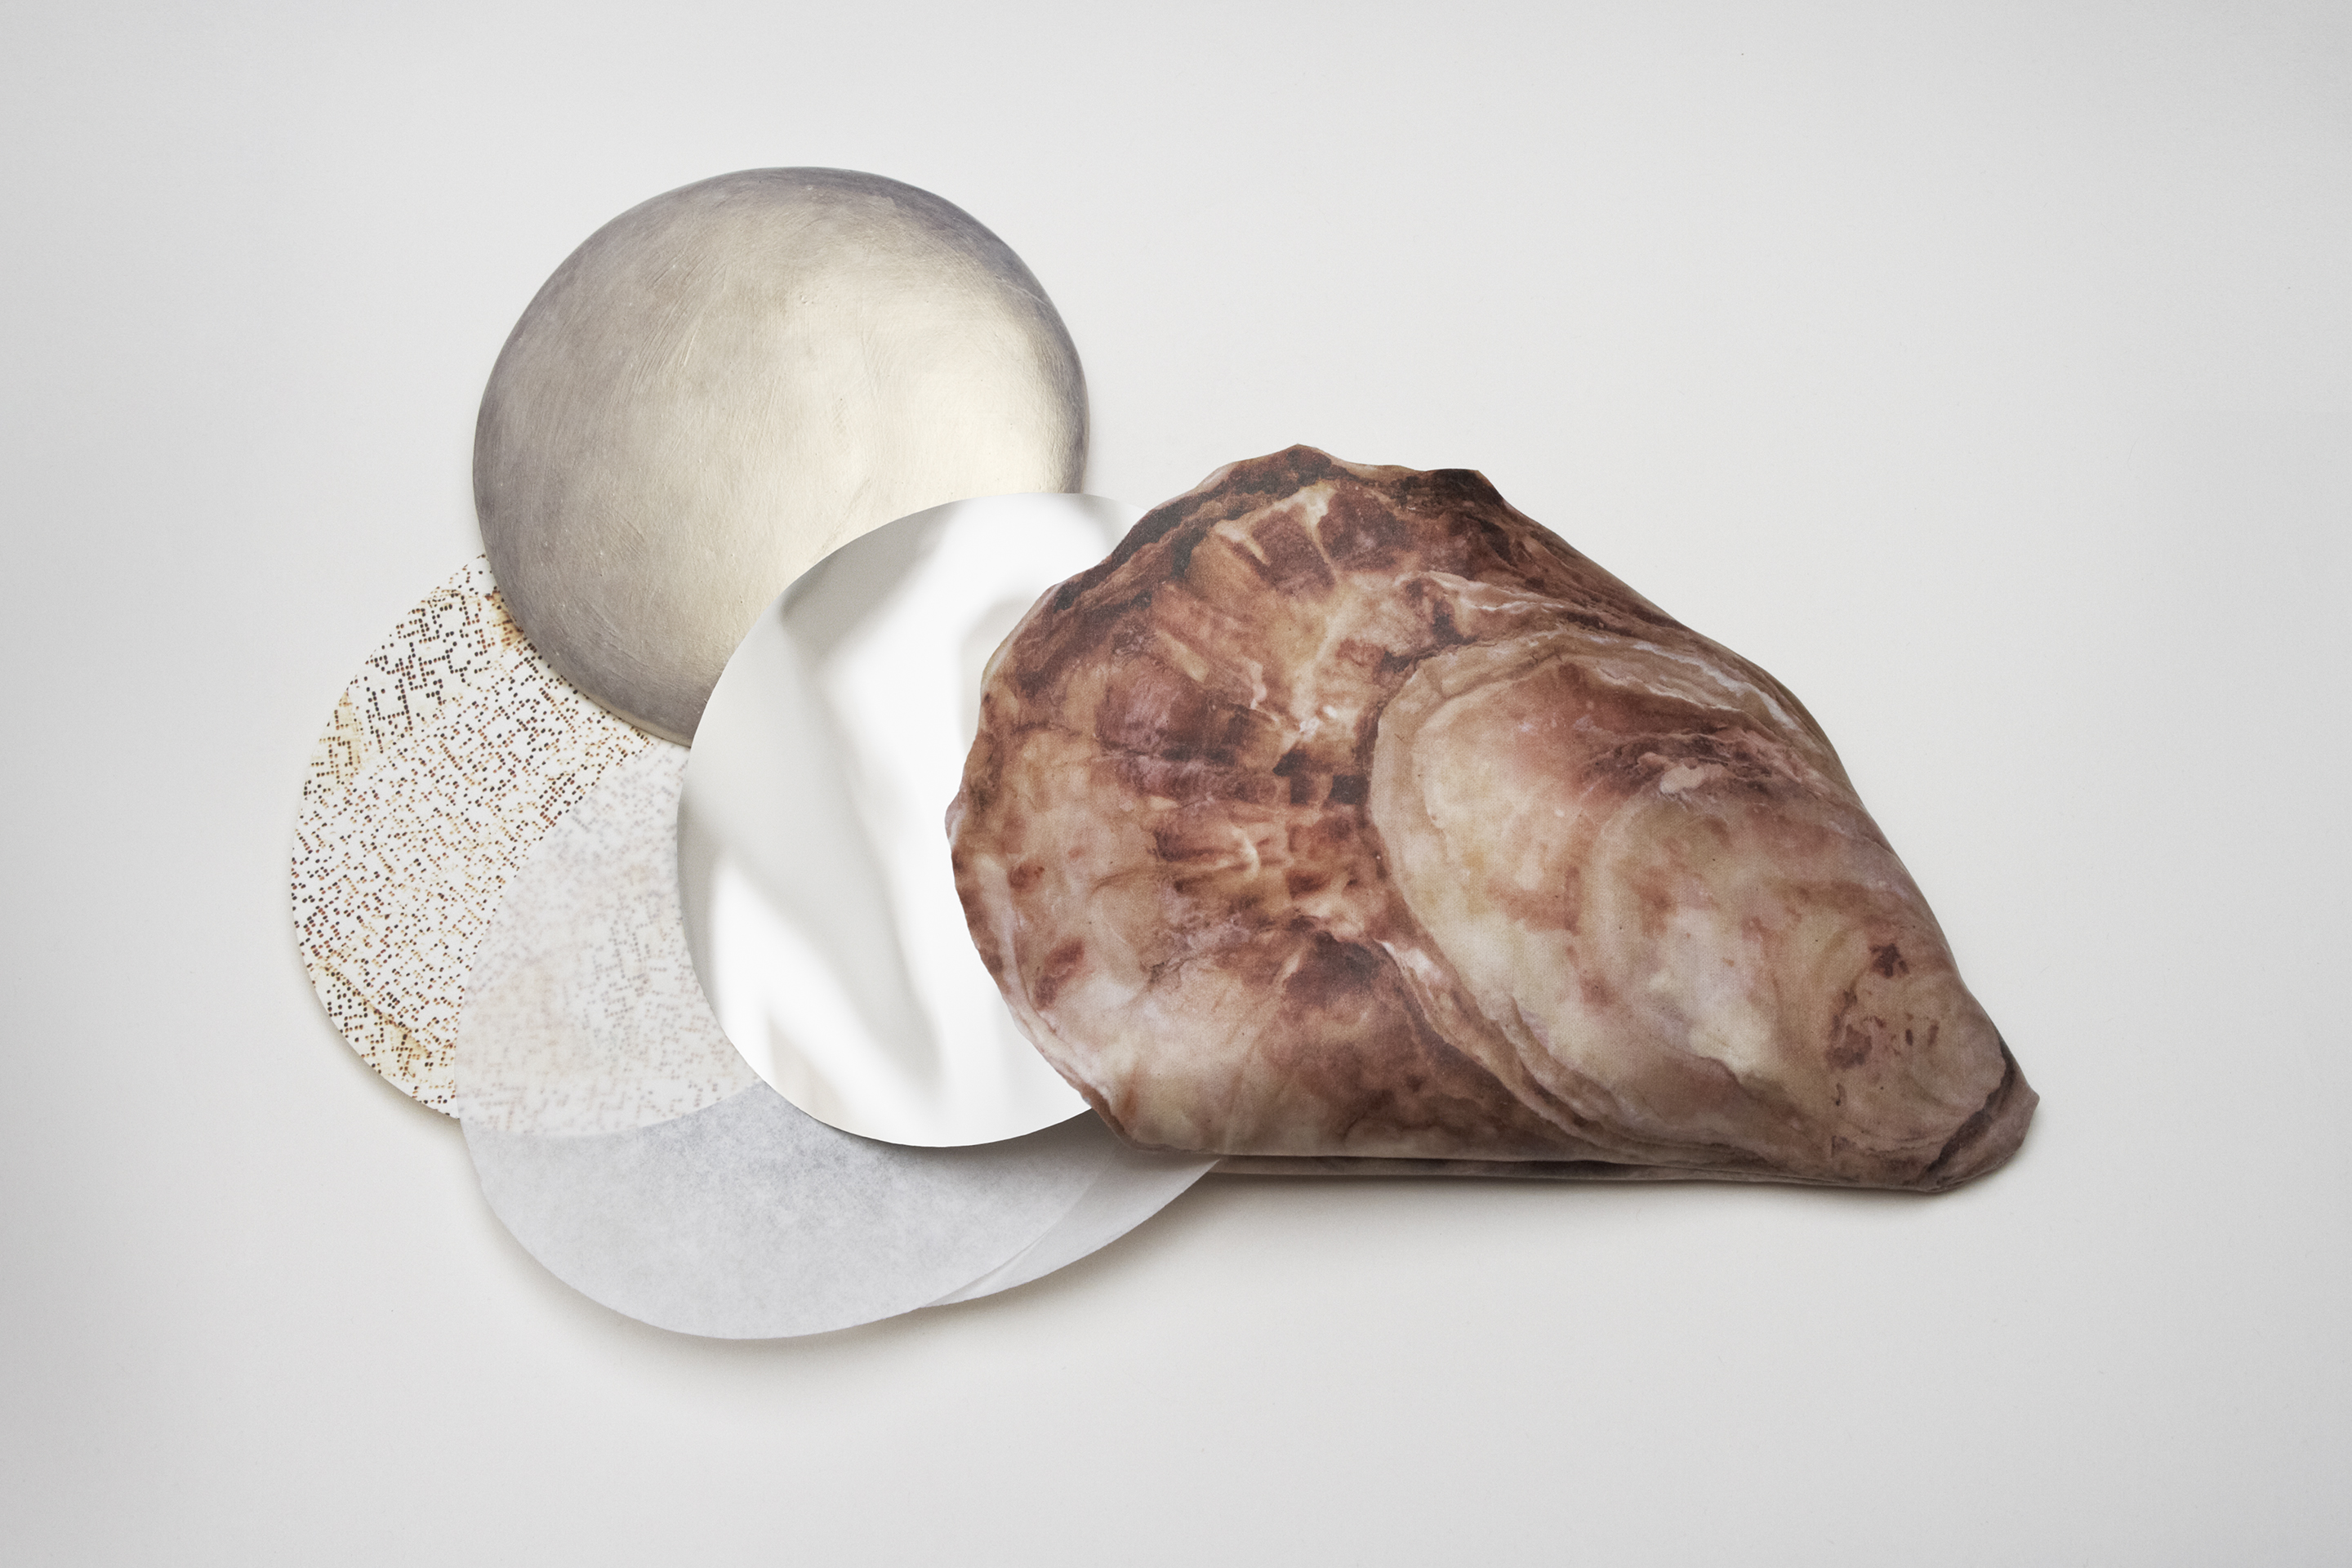 Pearl journals were created for workshops in shelters throughout California so that participants could create pearl discs